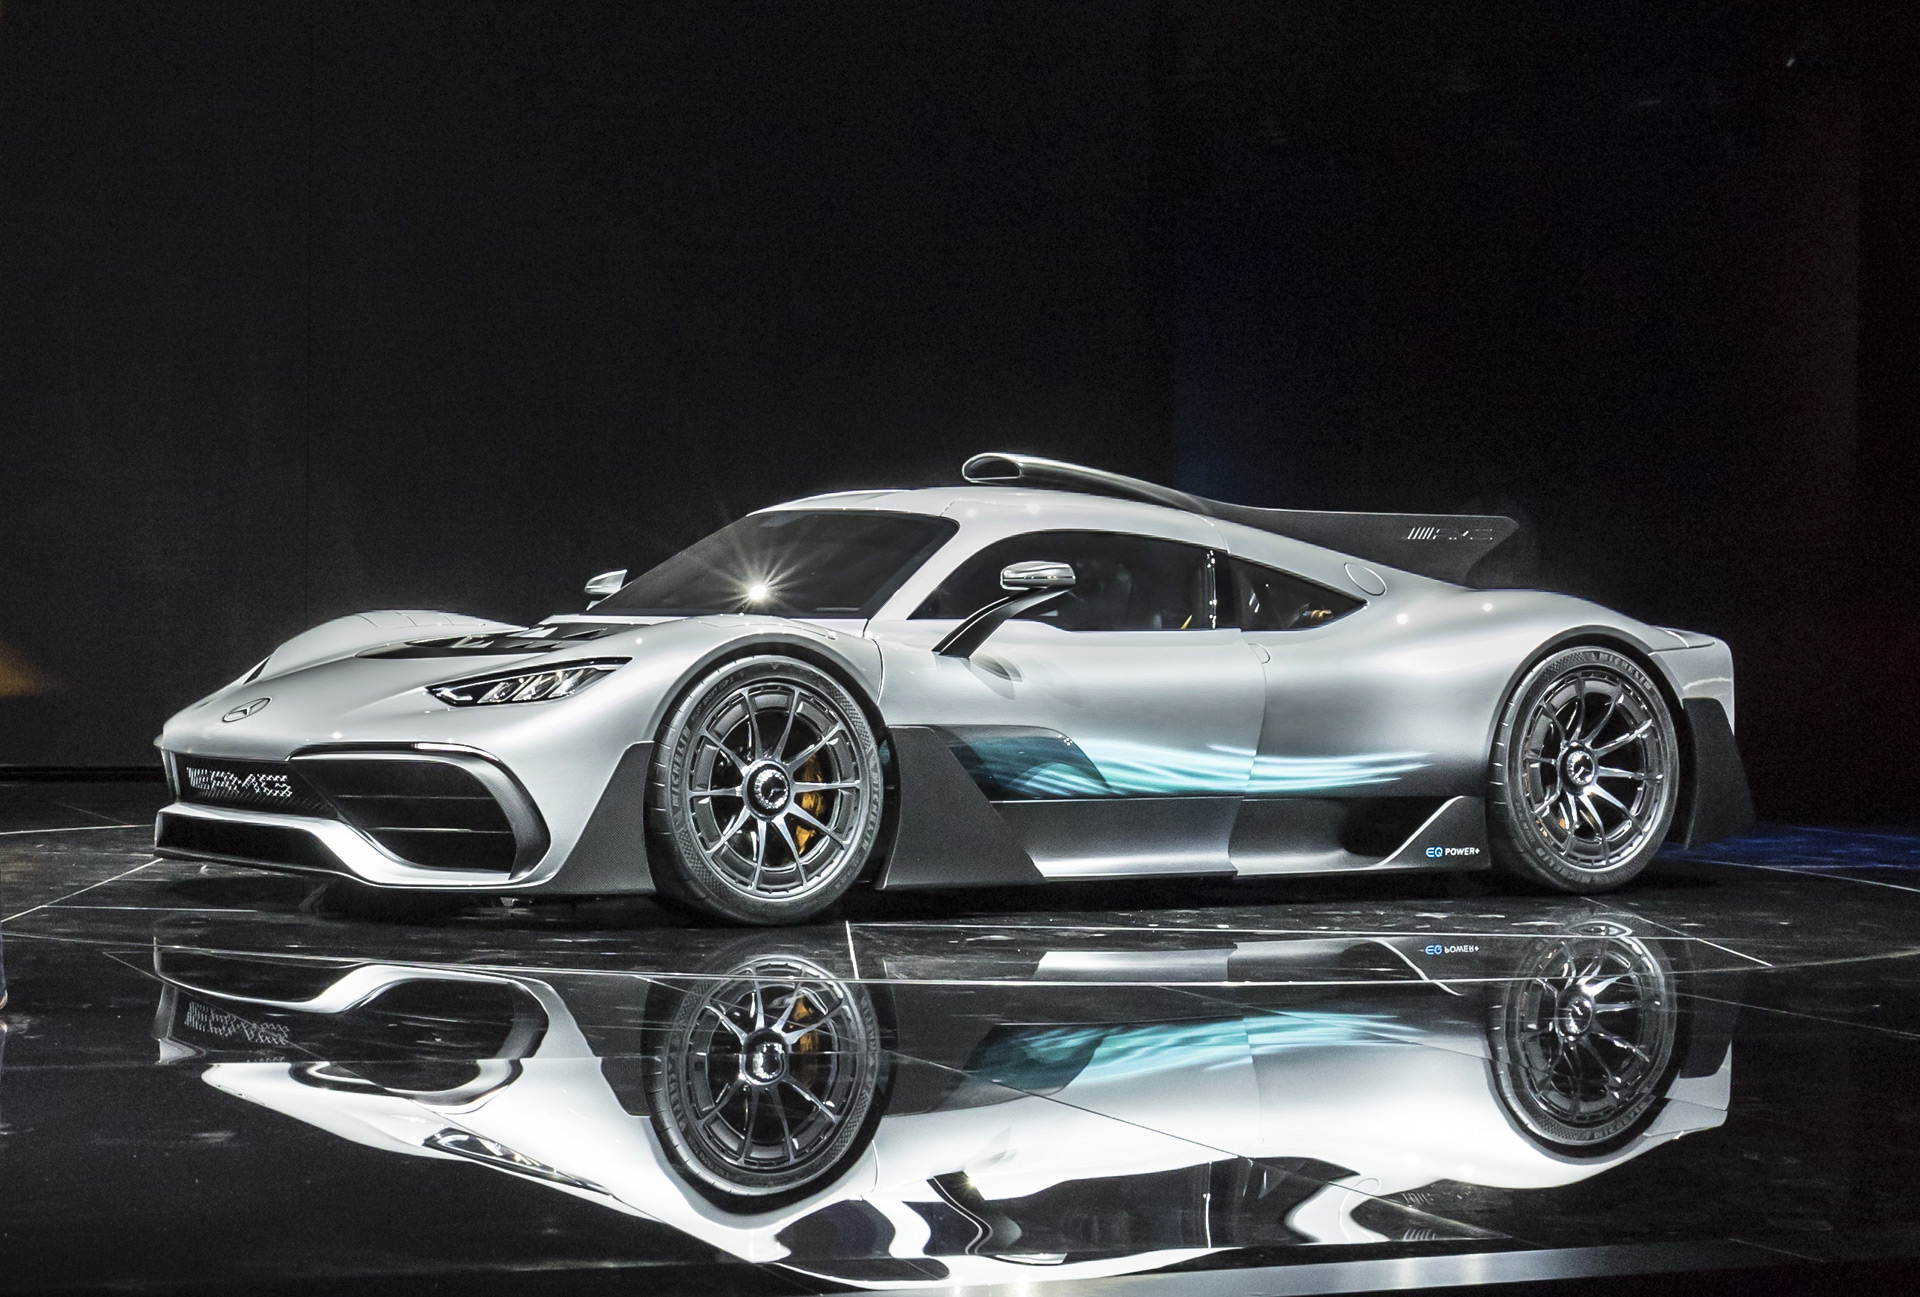 Amg Project One S Electric Drive System To Feature In More